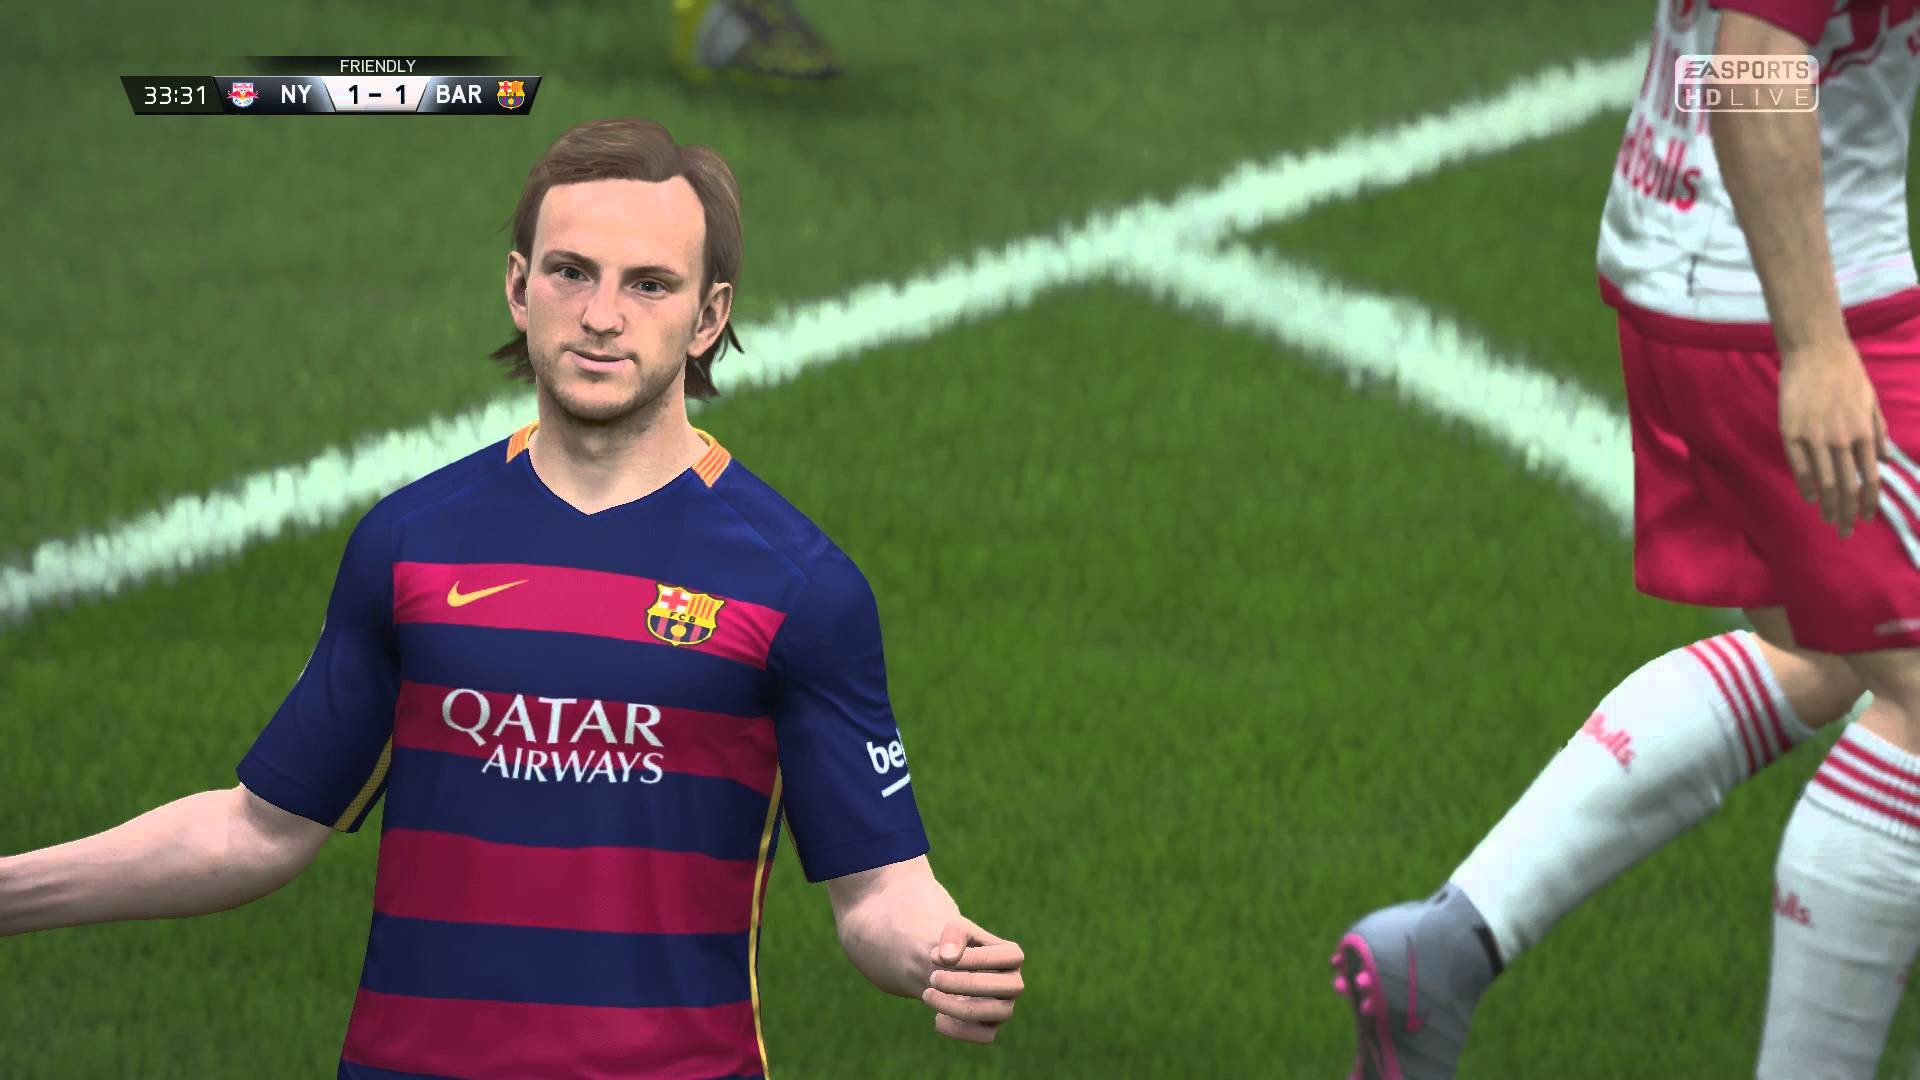 1920x1080 FIFA 16 - New York Red Bulls vs. FC Barcelona Gameplay [1080p / 60 FPS]